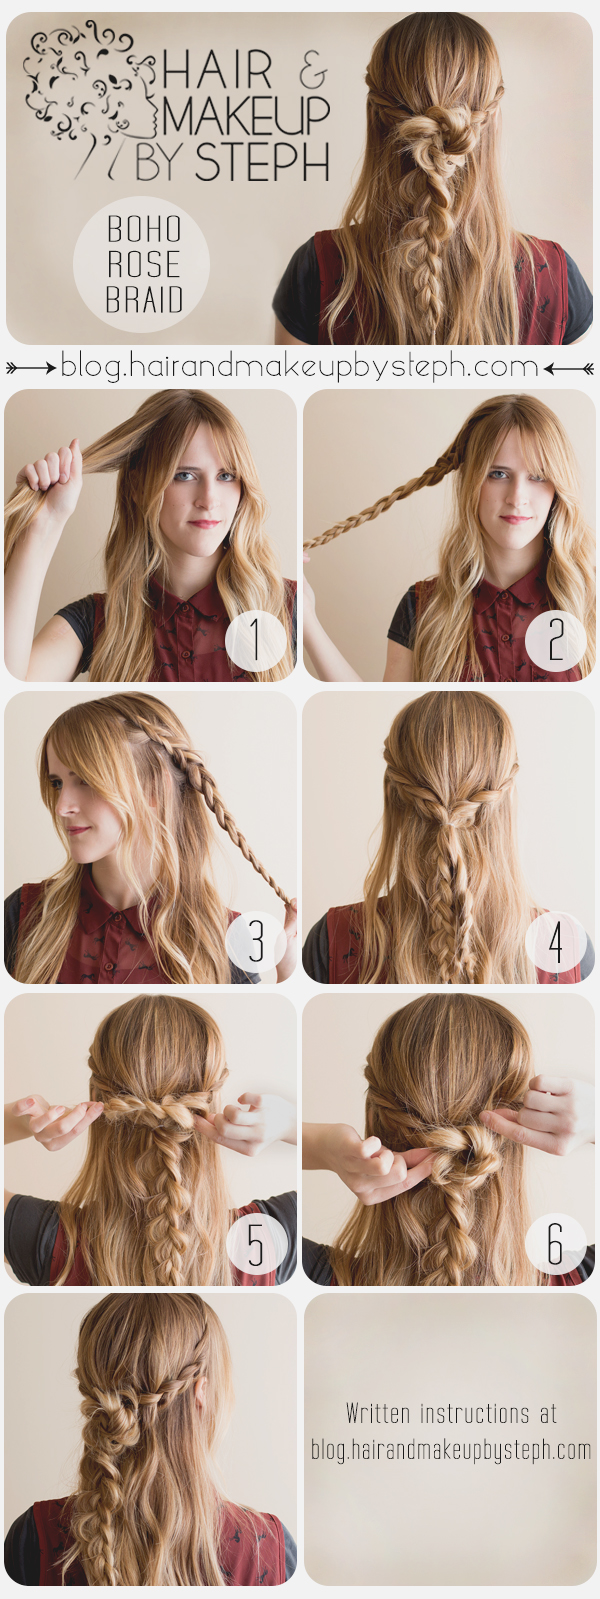 Braided Hairstyle Tutorial for Young LadiesBoho Braided Hairstyles